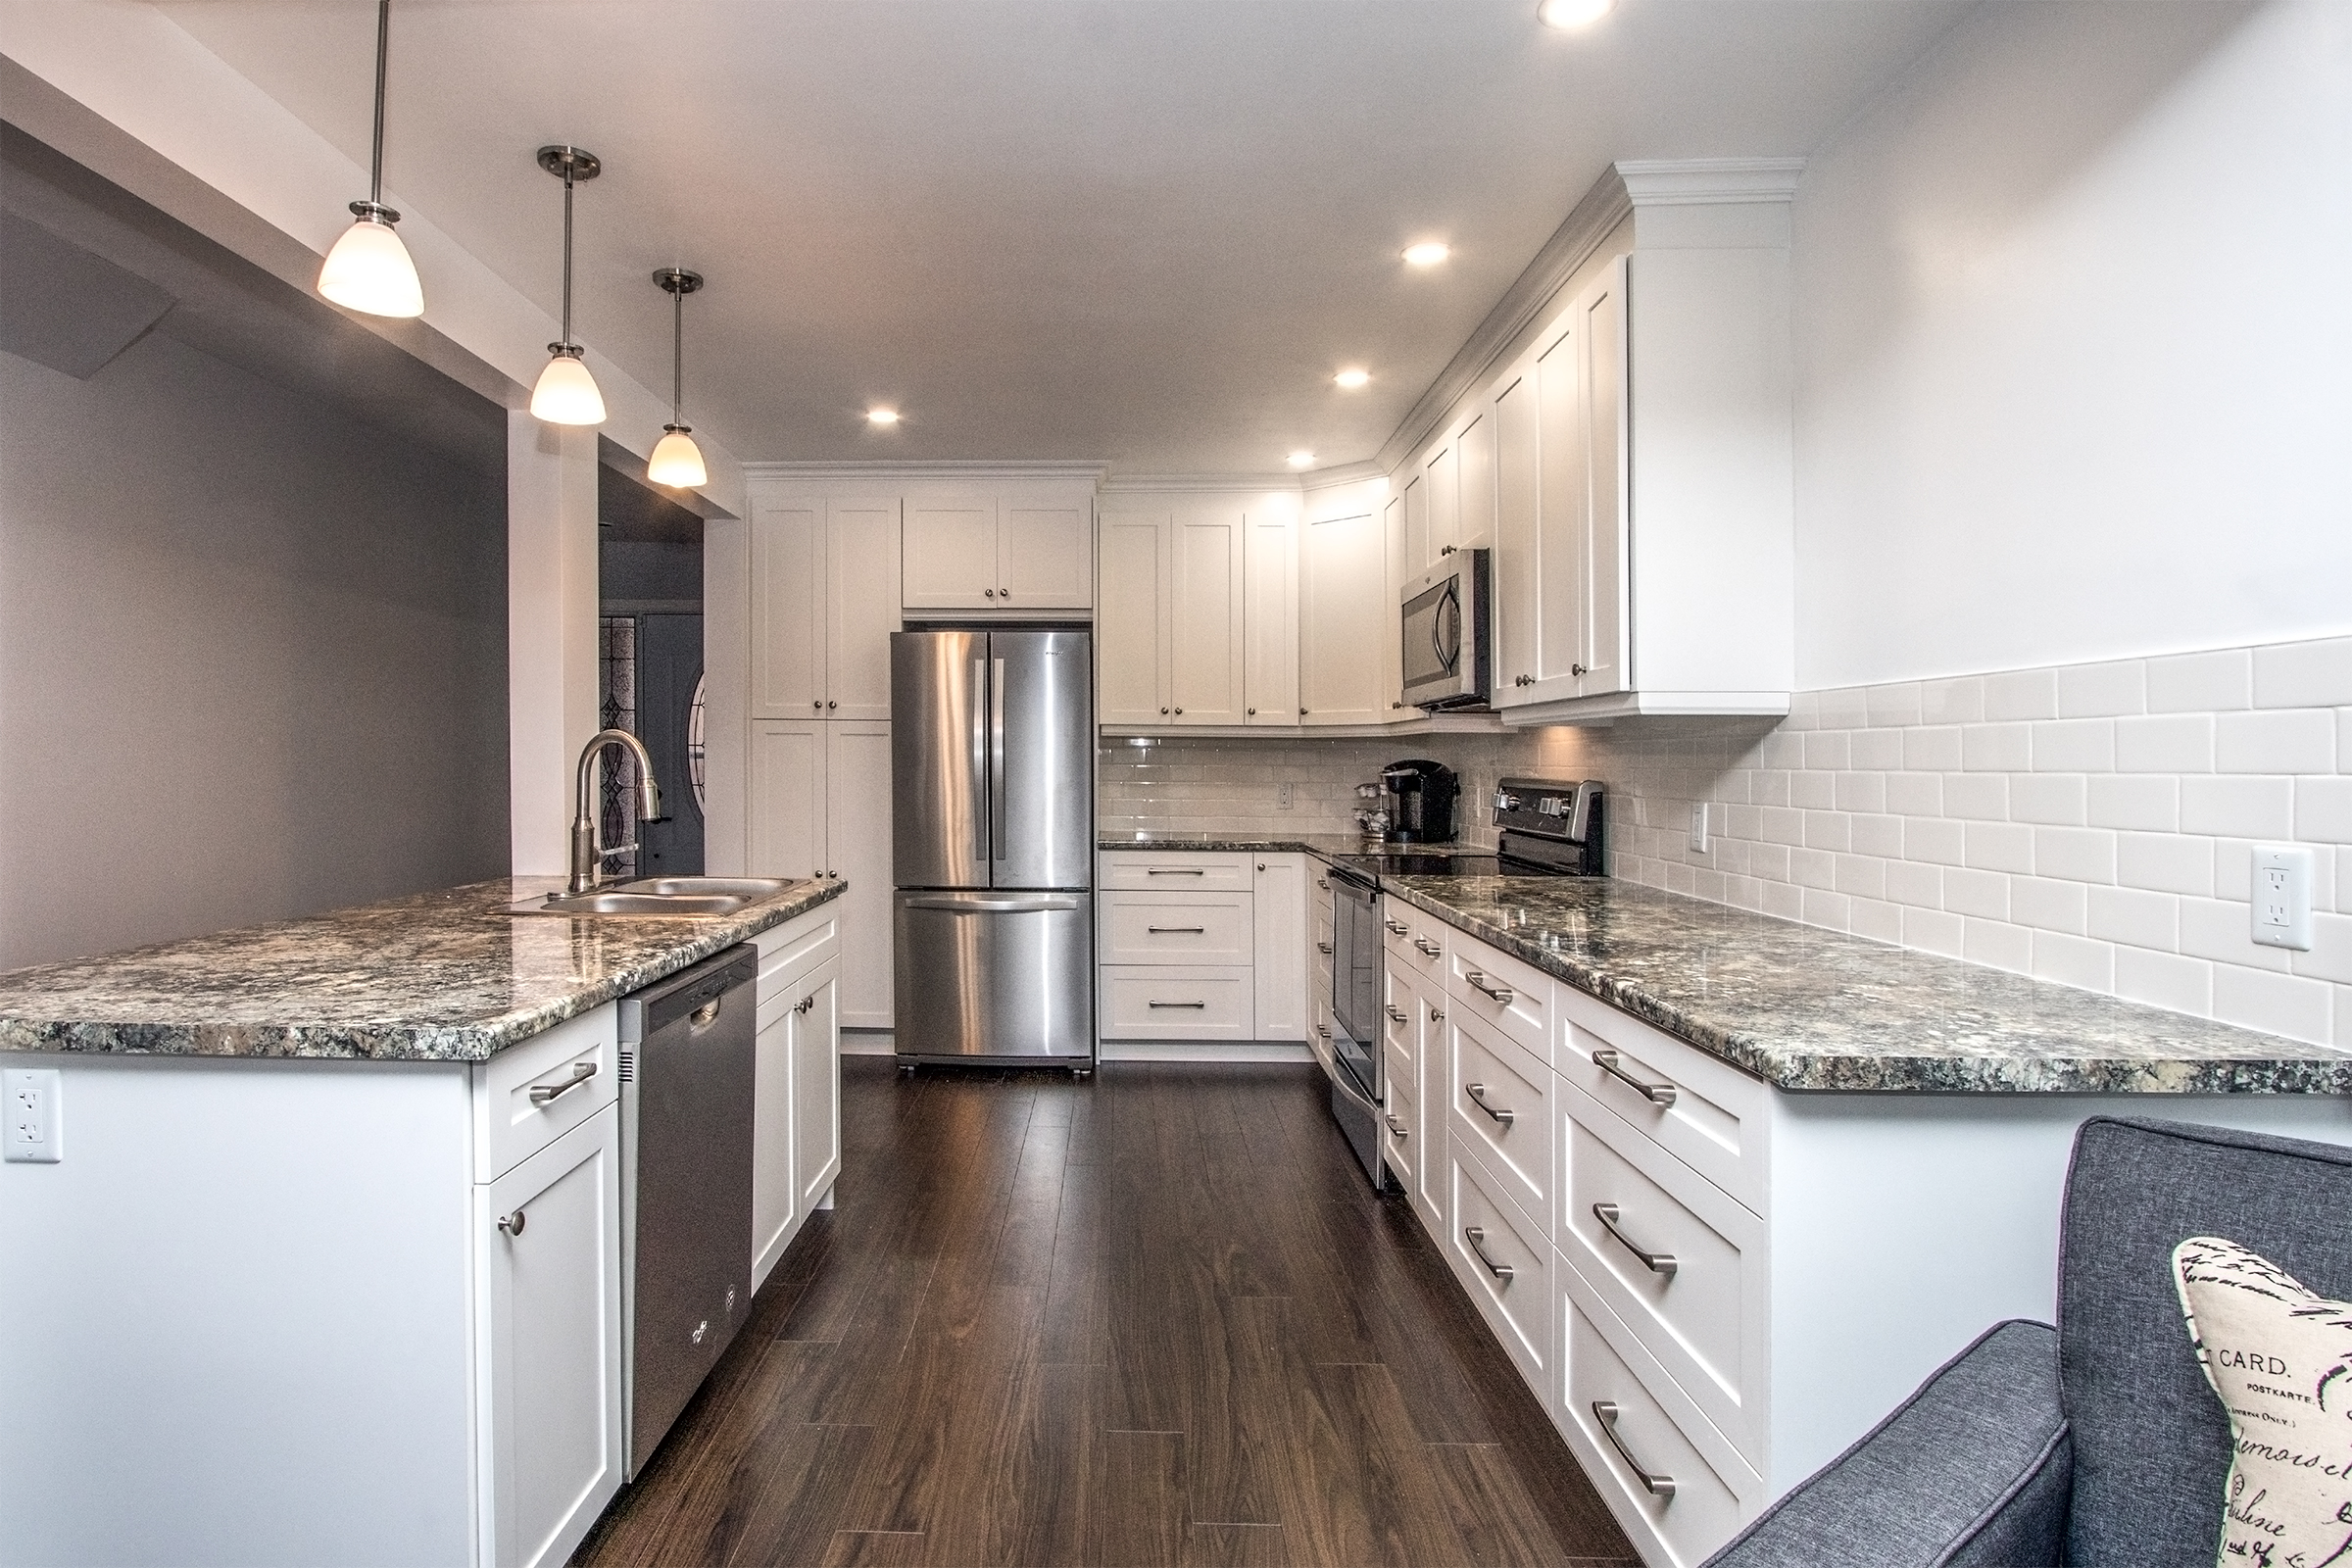 Tons of counter space here! Beautiful white shaker style cabinets with a laminate countertop. Laminate countertops have improved so much that they now have the look and feel of real stone.